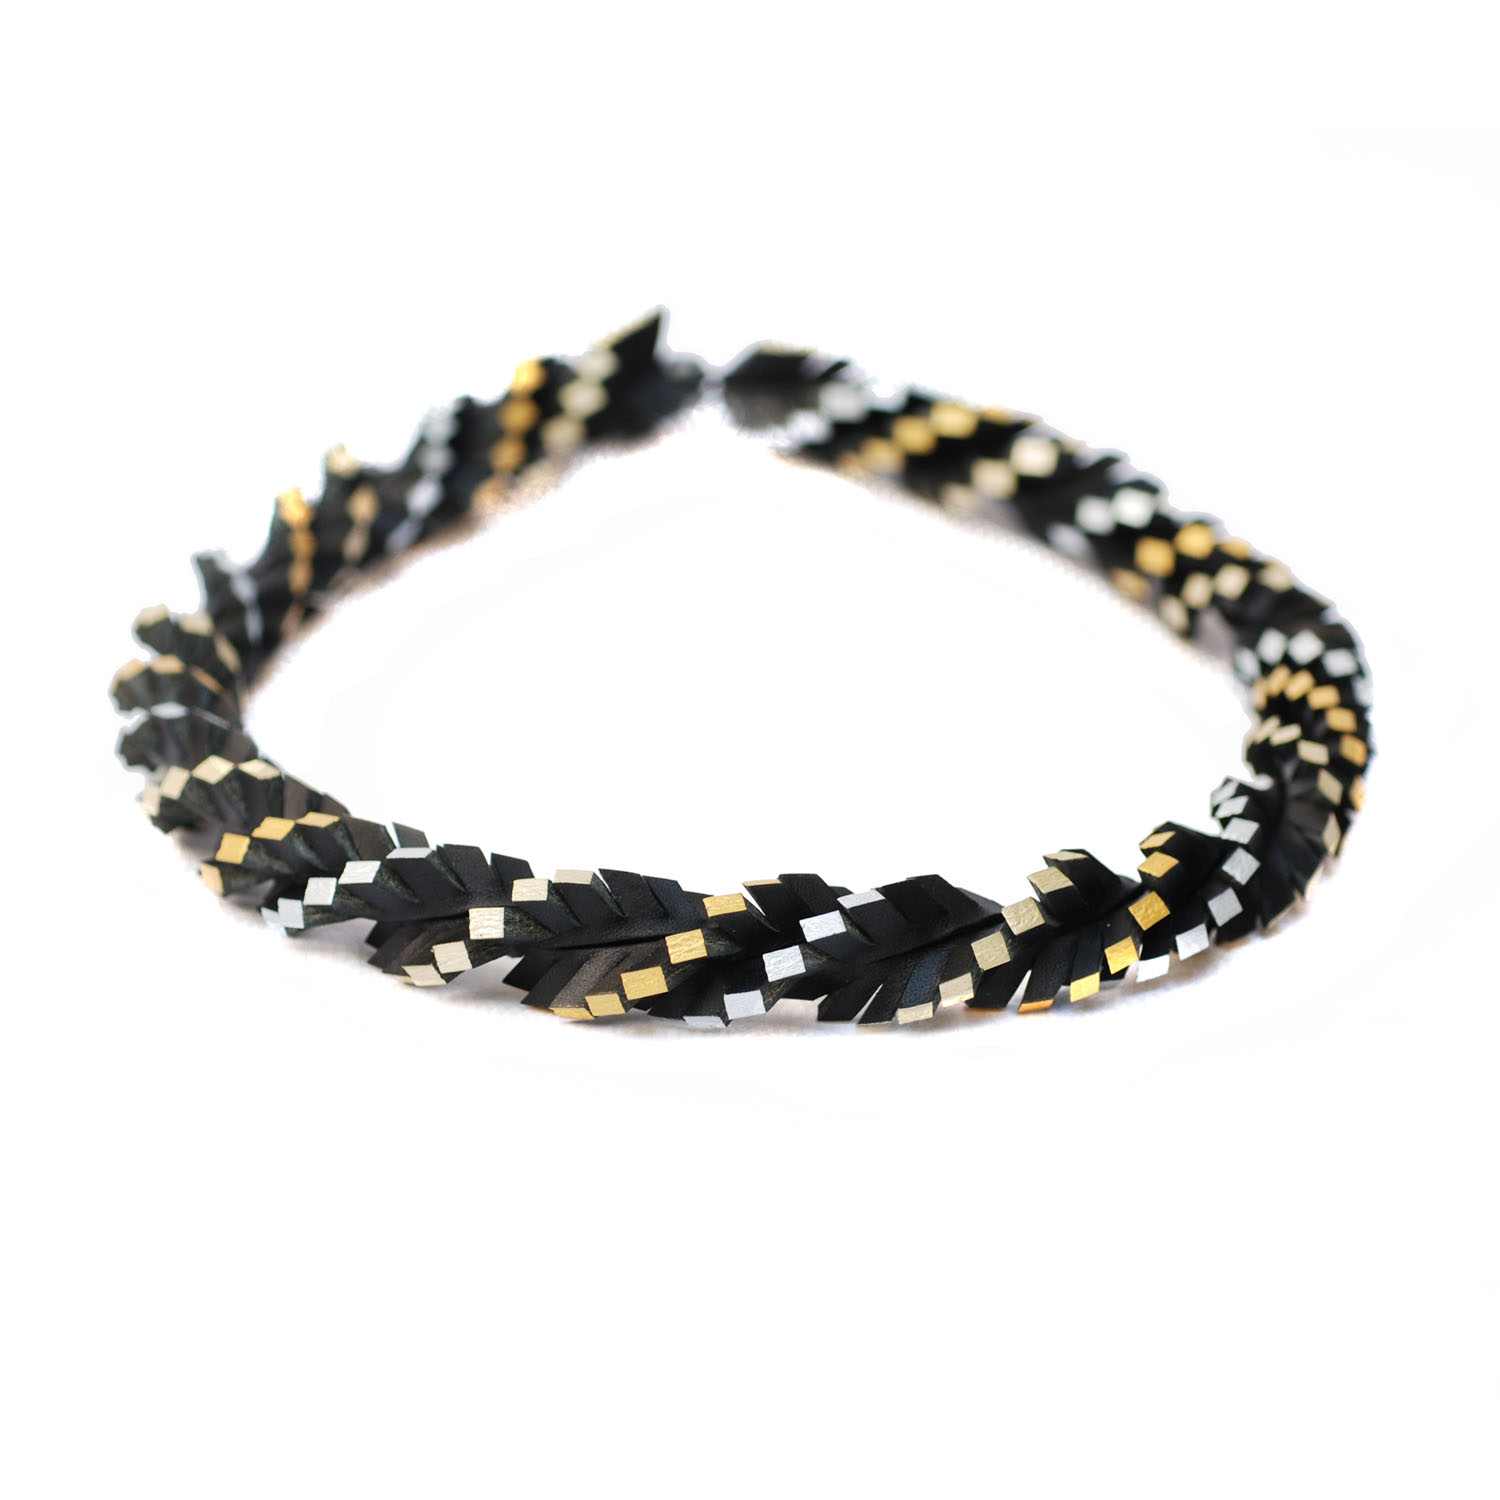 tania clarke hall Twisted Up Black & Gold-Silver.jpg